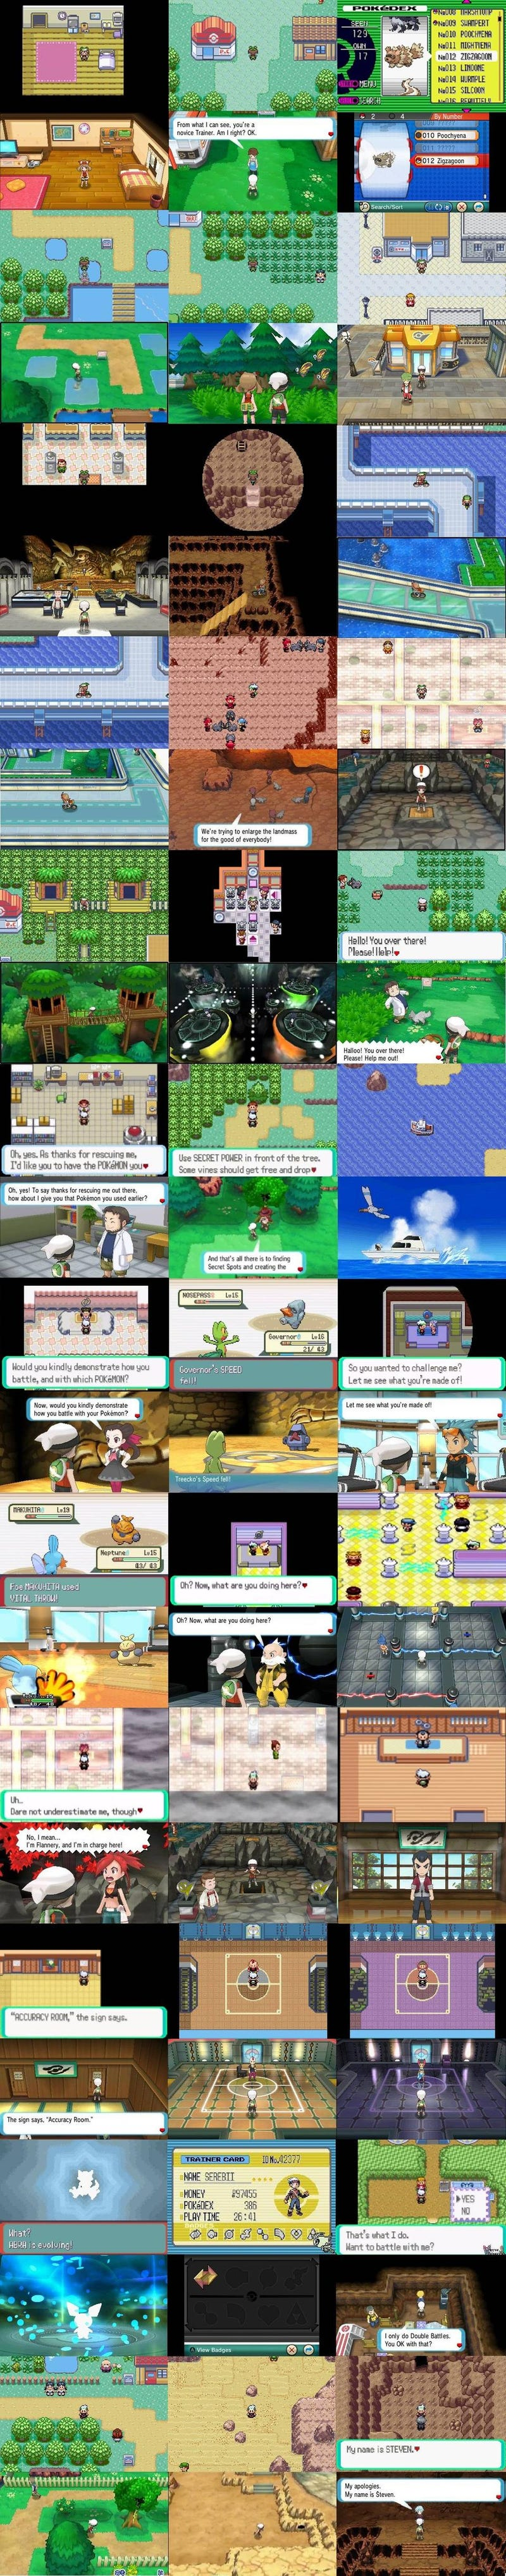 What Over A Decade of Progress In Pokémon Looks Like